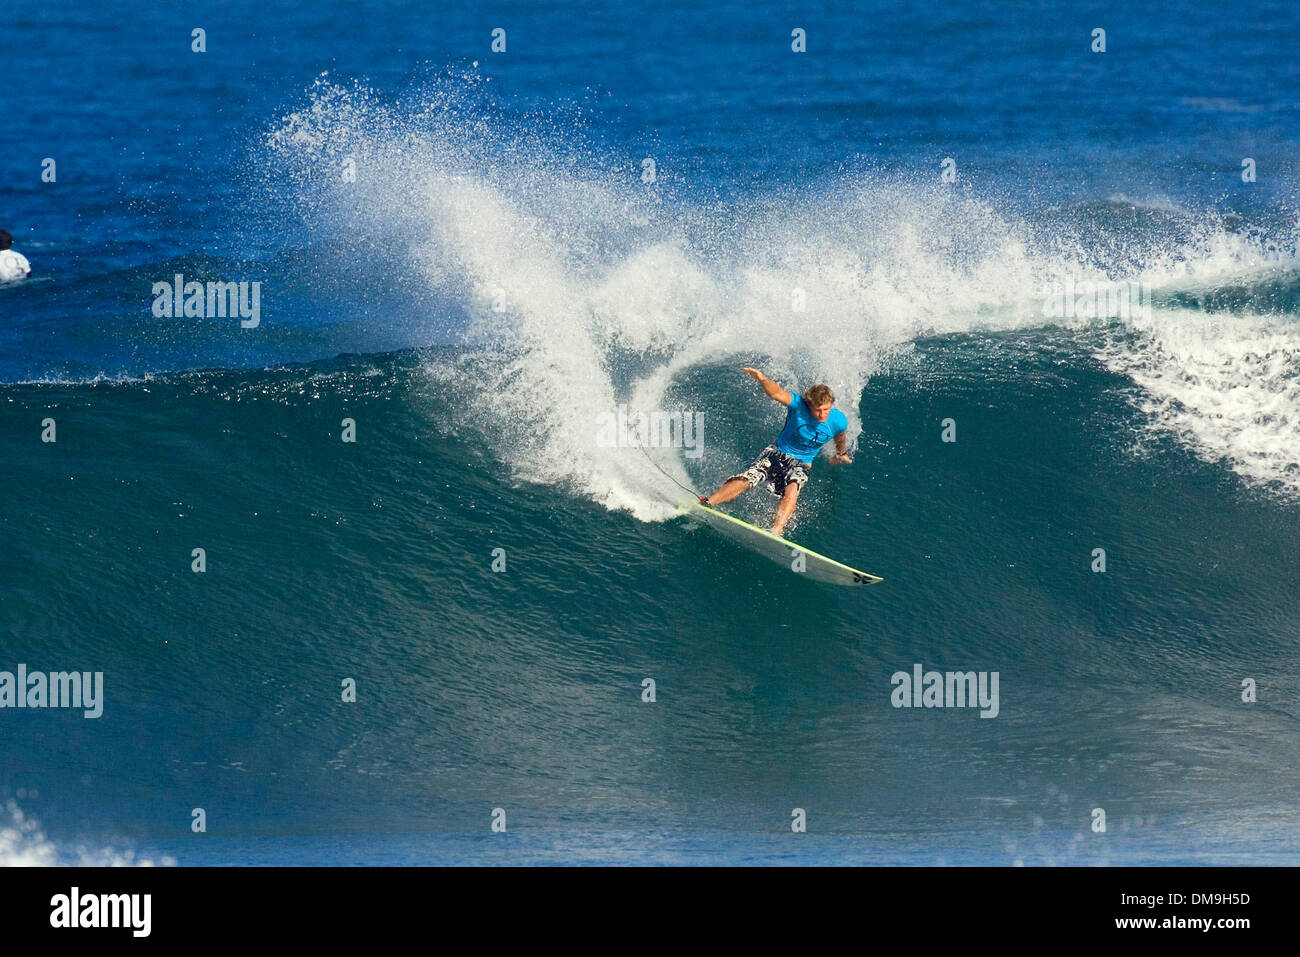 Nov 17, 2005; Haleiwa, HI, USA; JAY THOMPSON (Sunshine Coast, Aus) (pictured) surfed a strong heat in round two of the OP Pro at Haleiwa, Hawaii today. Thompson placed a narrow second to Daniel Ross (Aus) (16.14 out of 20 to RossÕs 17.24) to advance to round three (round of 64) eliminating Greg Long (USA) and Drew Courtney (Aus) from the event. The OP Pro is the first jewel in the  - Stock Image